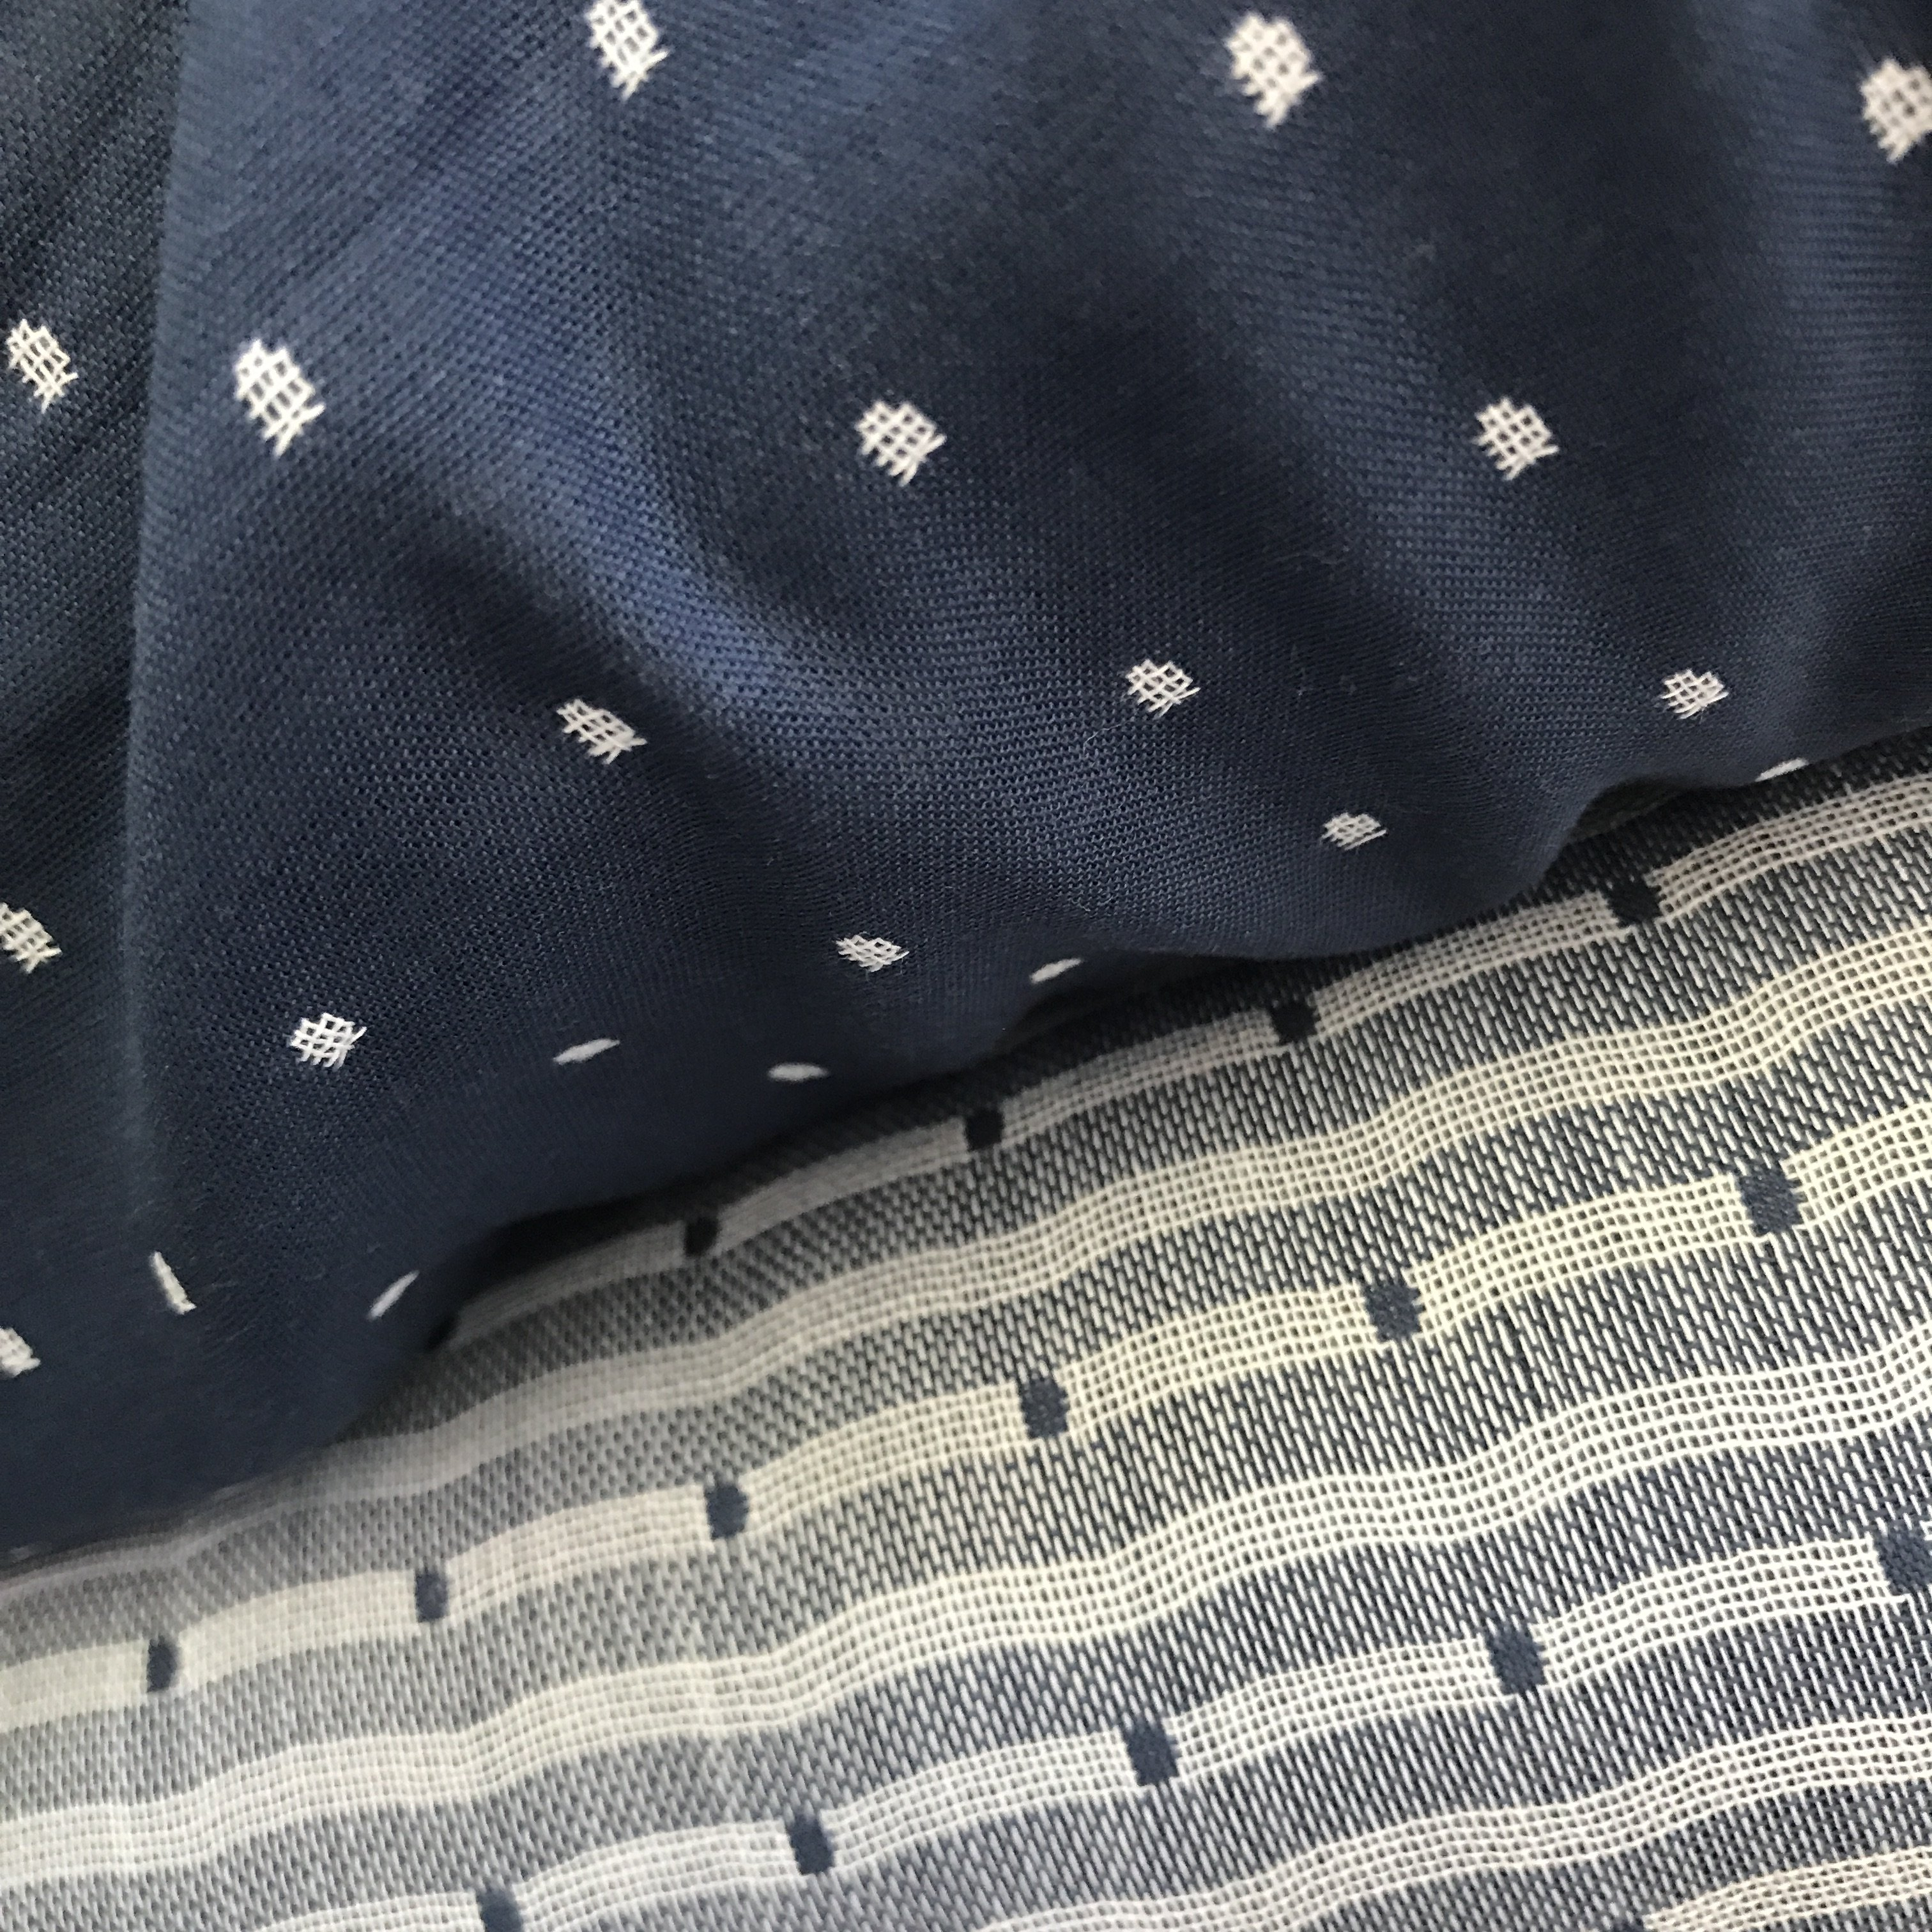 Polka Dot Blue Double Gauze Organic Cotton